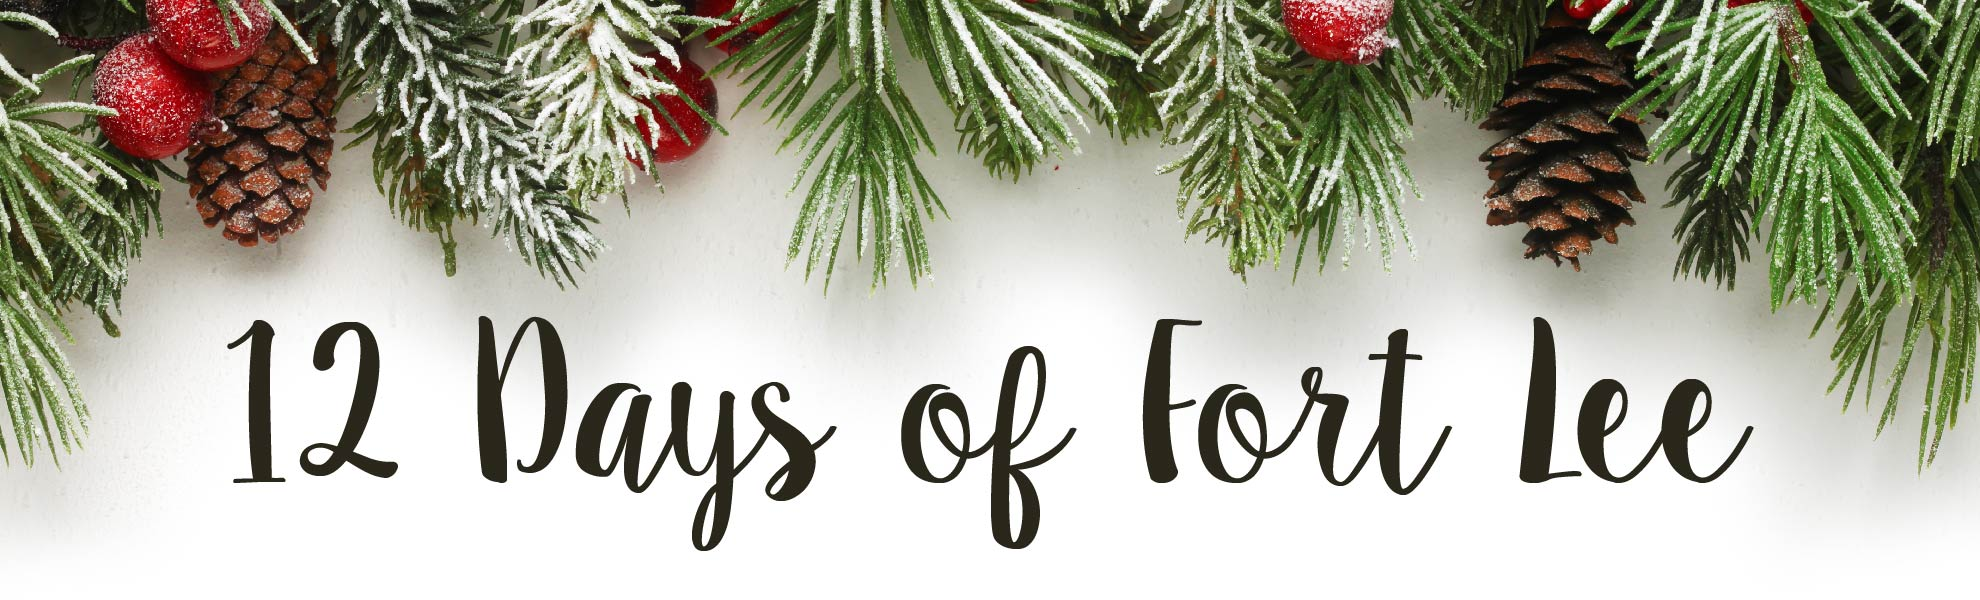 12 Days of Fort Lee Holiday Specials